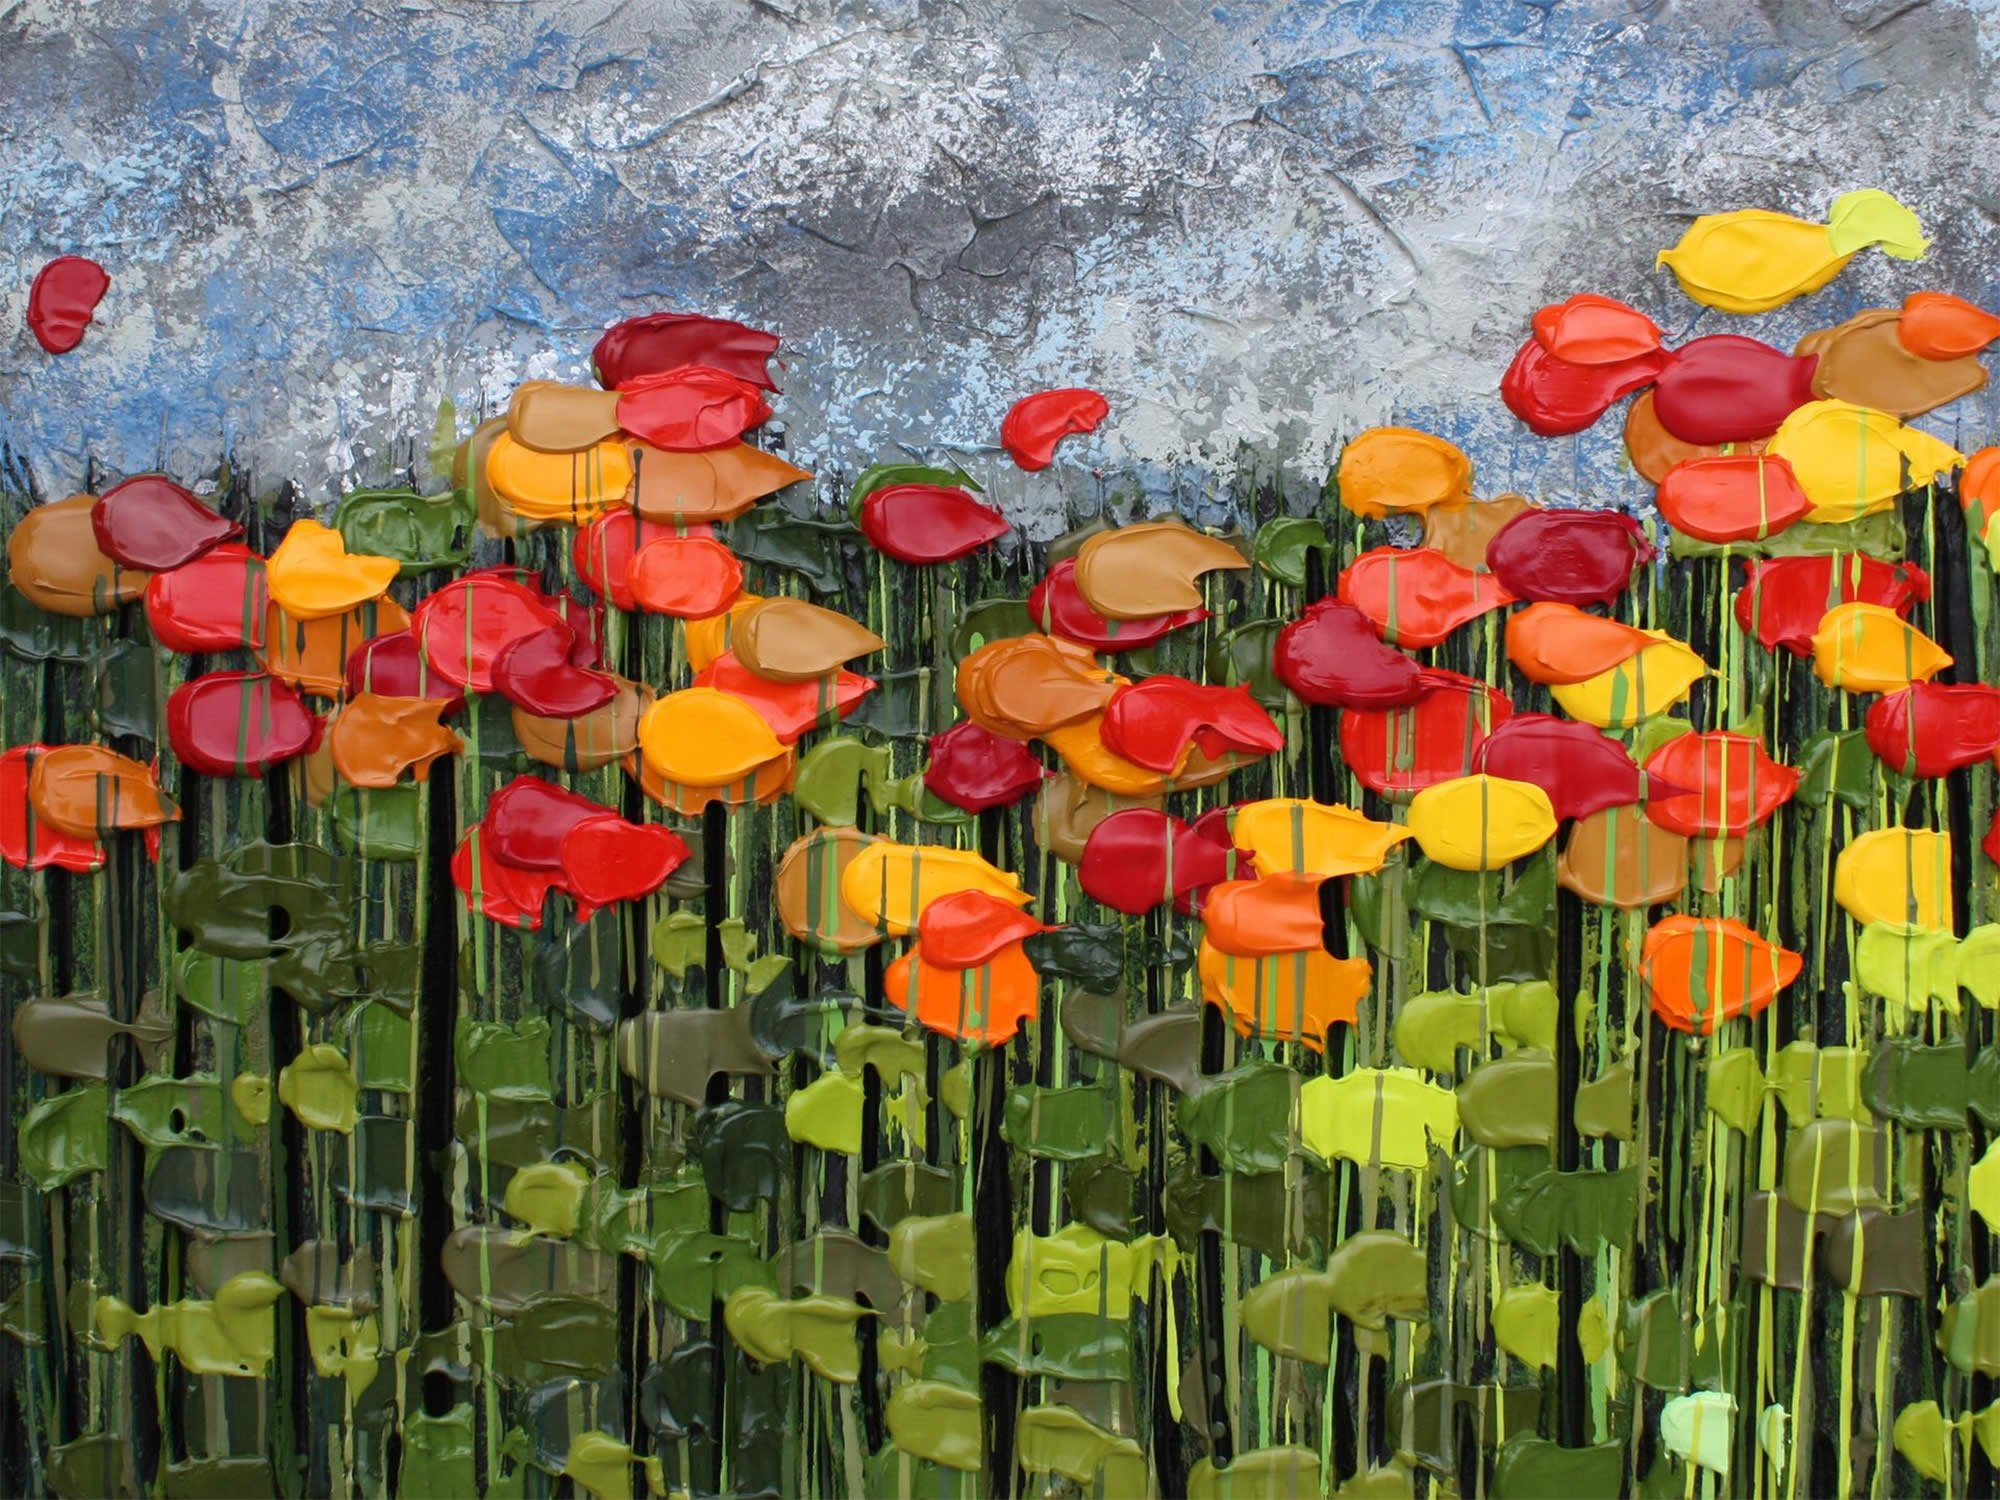 flowers, impressionim art, by Jeff Hanson